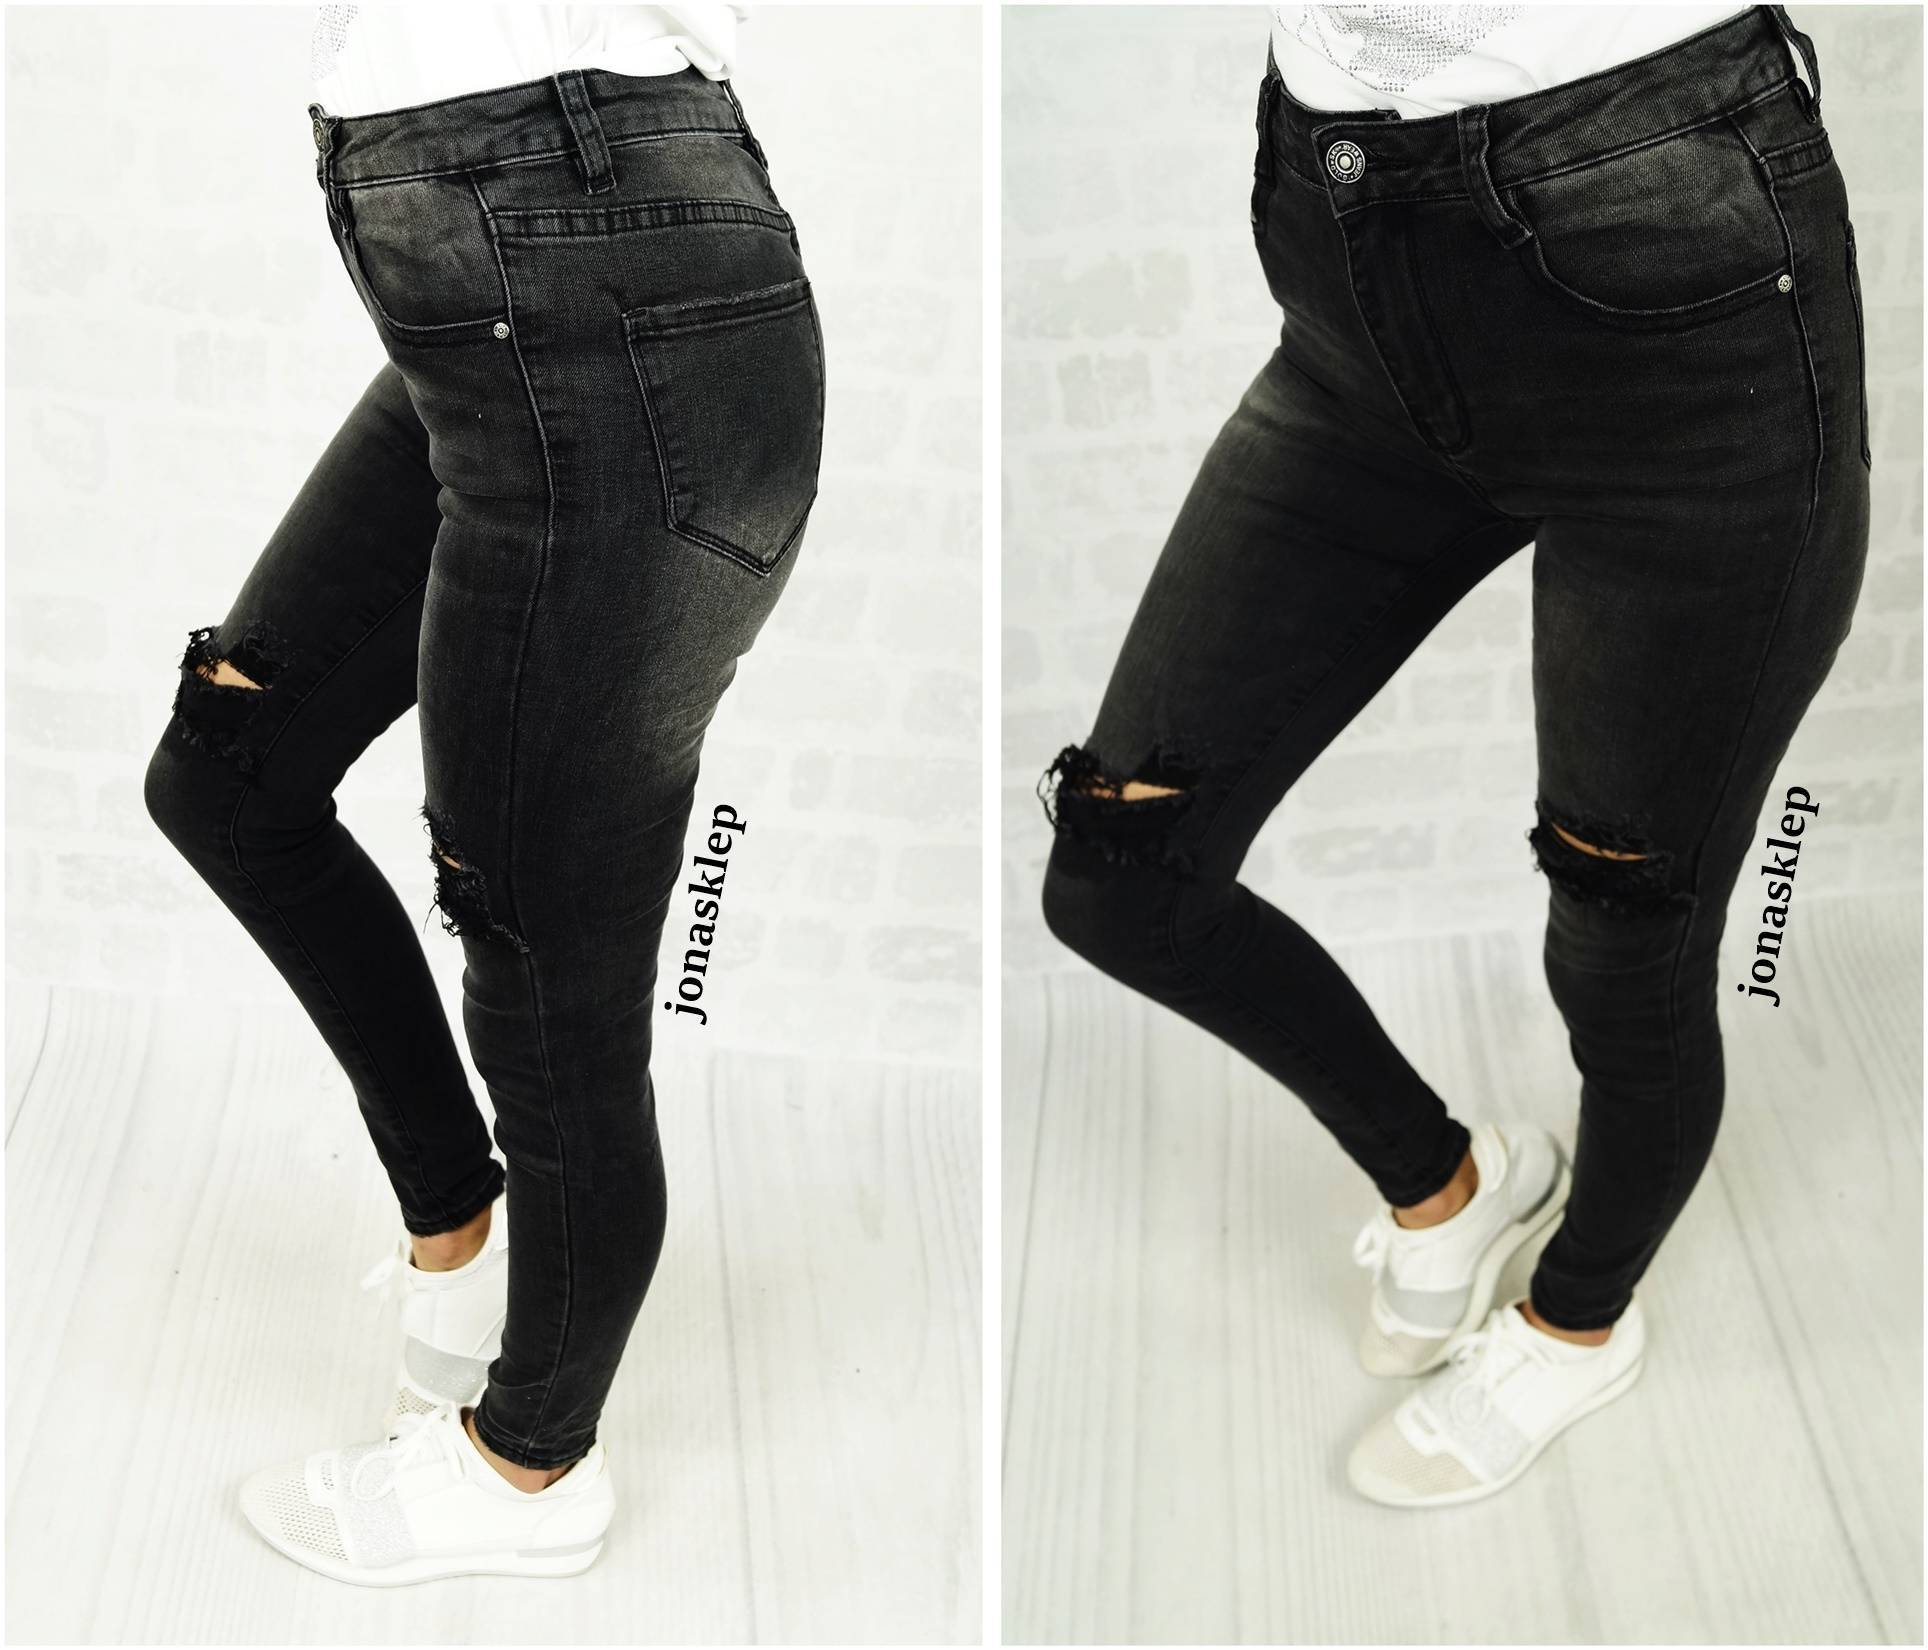 CROP JEANS DZIURY pazurki GRAY hot